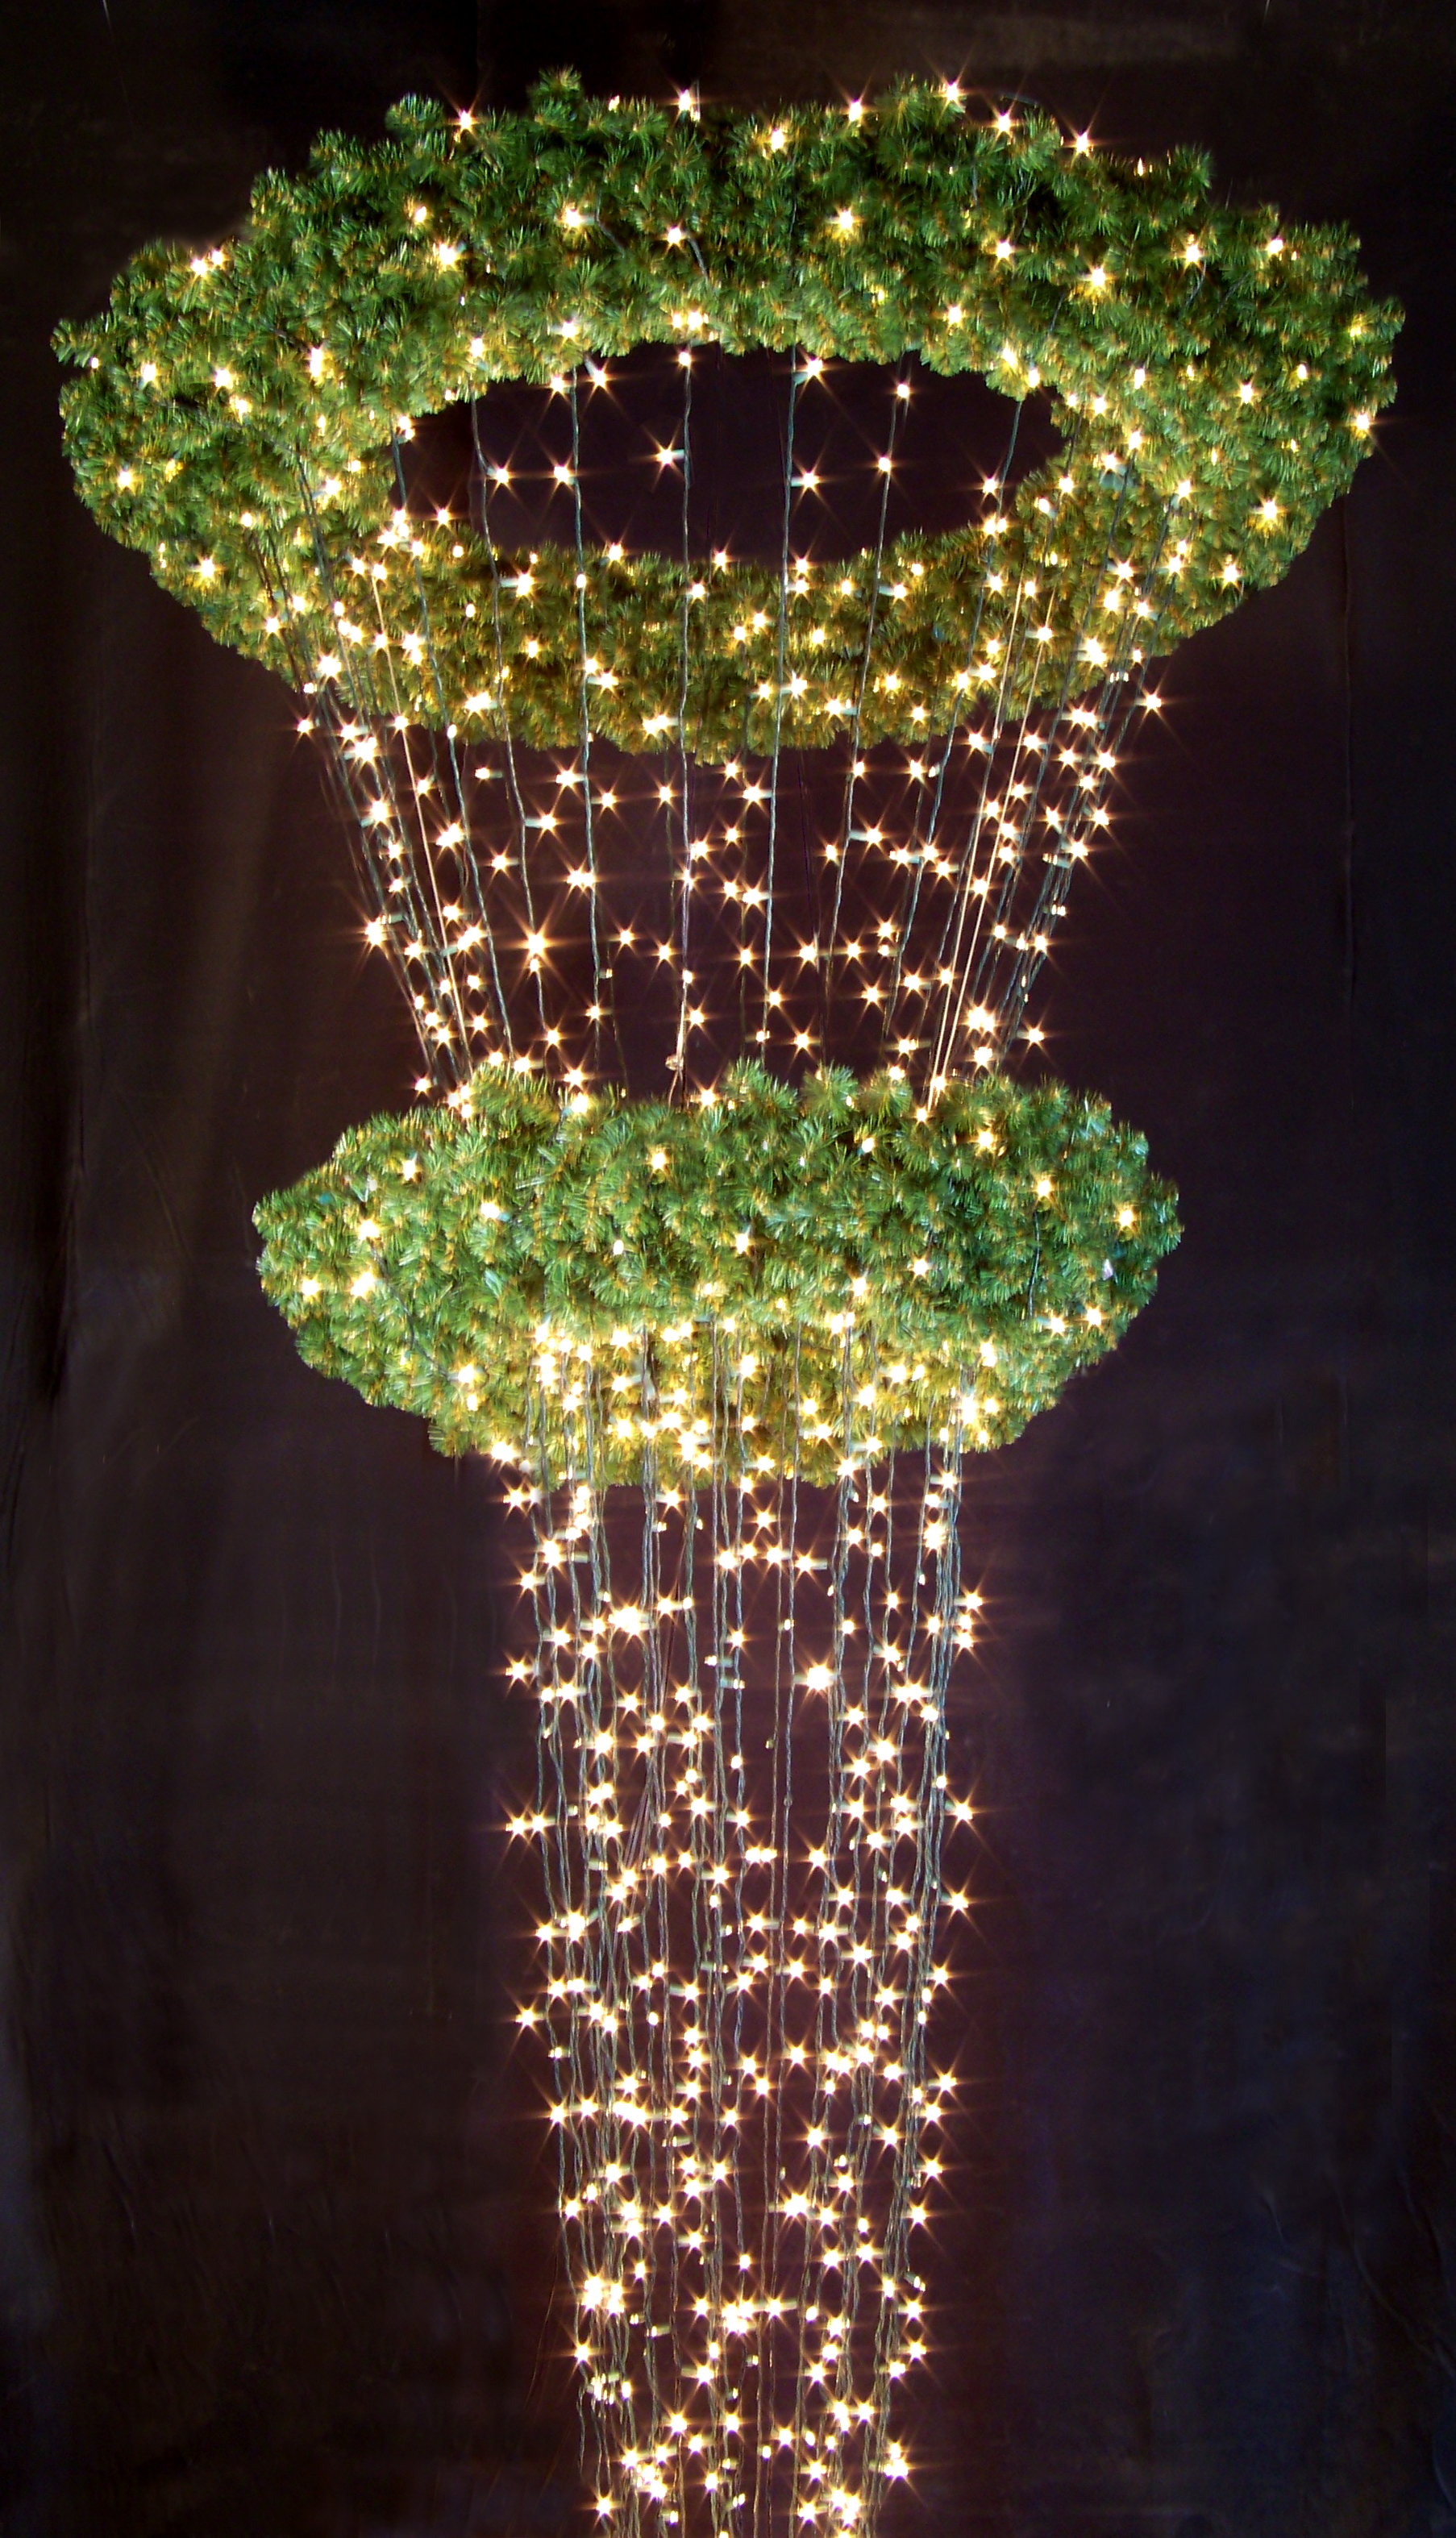 32 poinsettia tree wreath chandelier internally lighted luminaria - Commercial Christmas Decorations